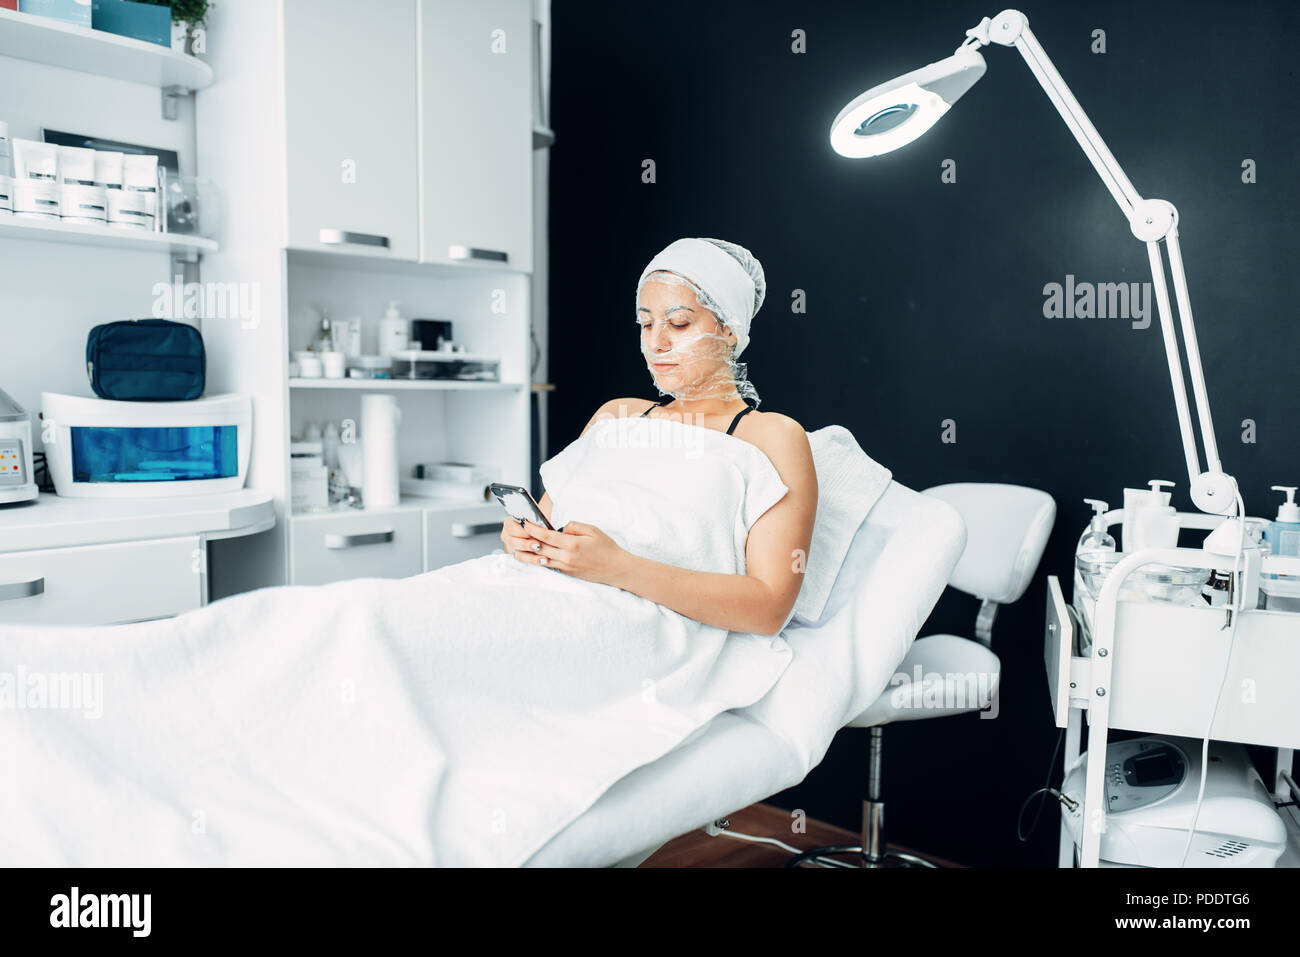 Patient in face mask, getting rid of wrinkles - Stock Image